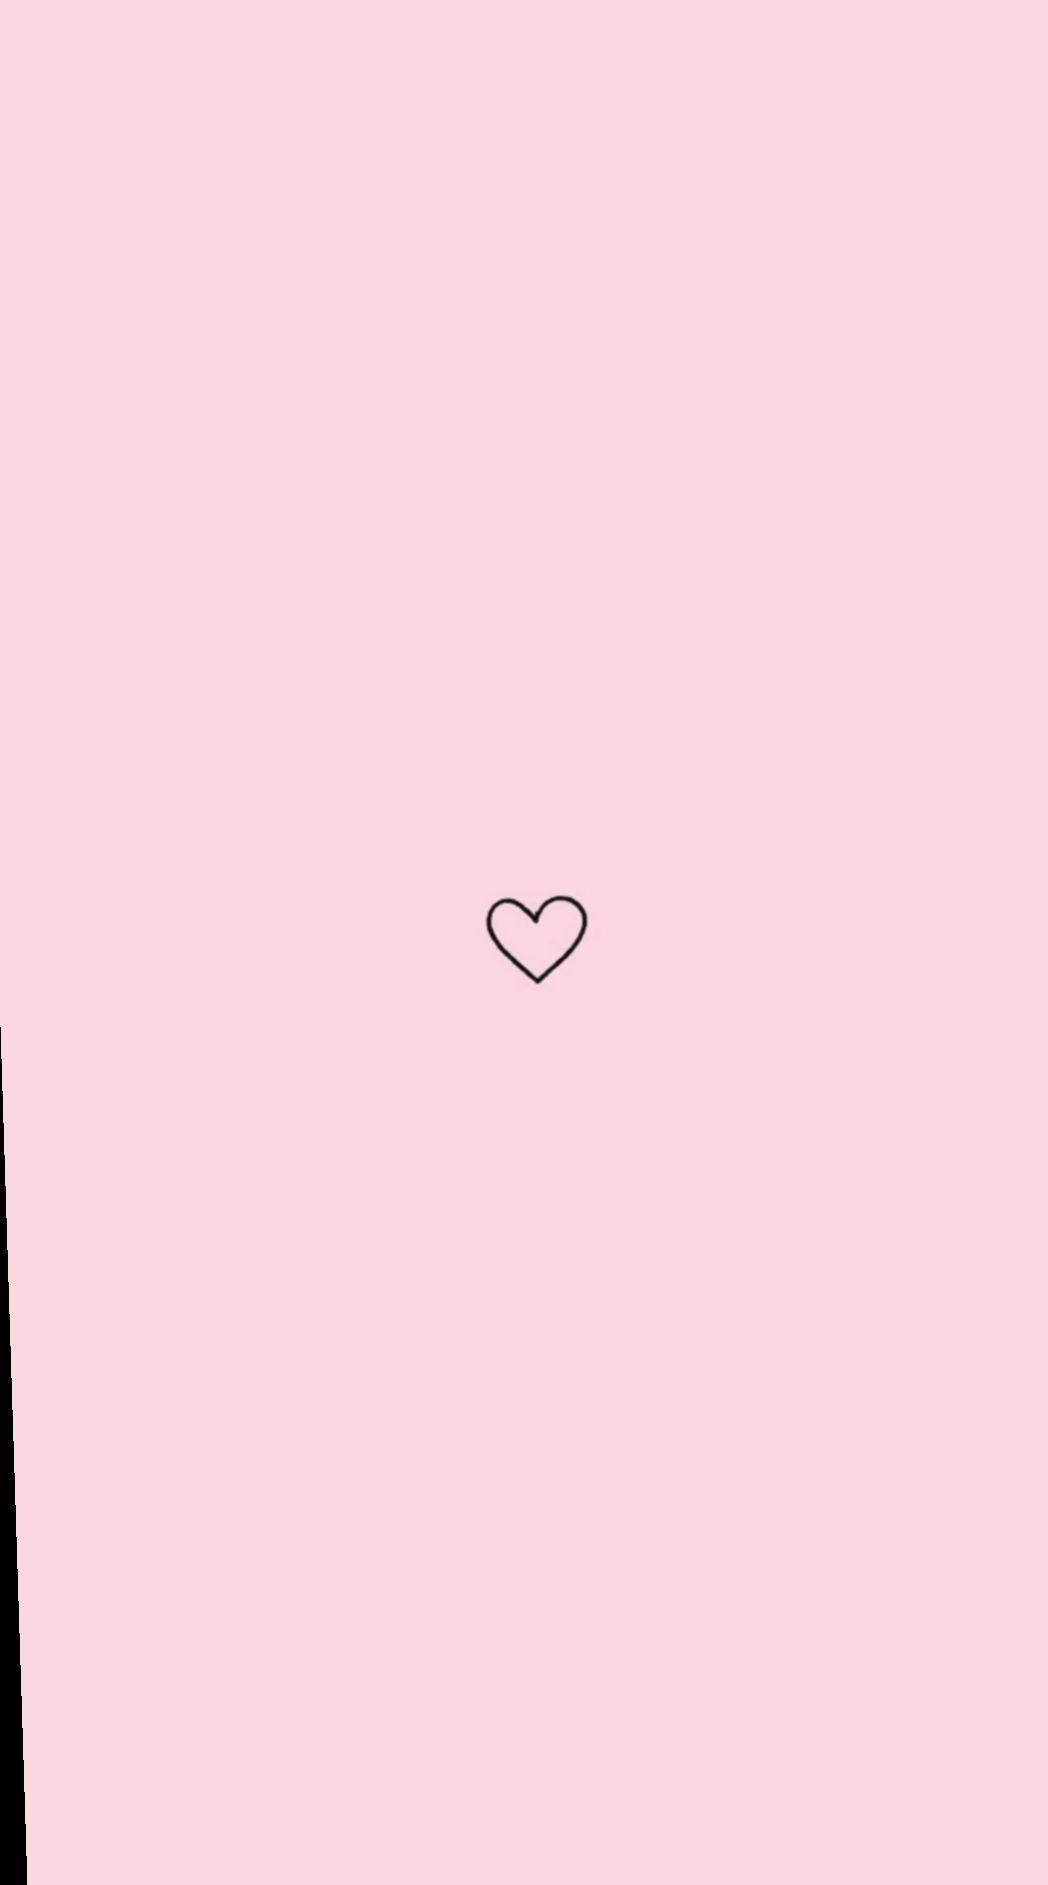 6 Wallpaper Android Pink Heart Pink Wallpaper Iphone Aesthetic Iphone Wallpaper Wallpaper Iphone Cute